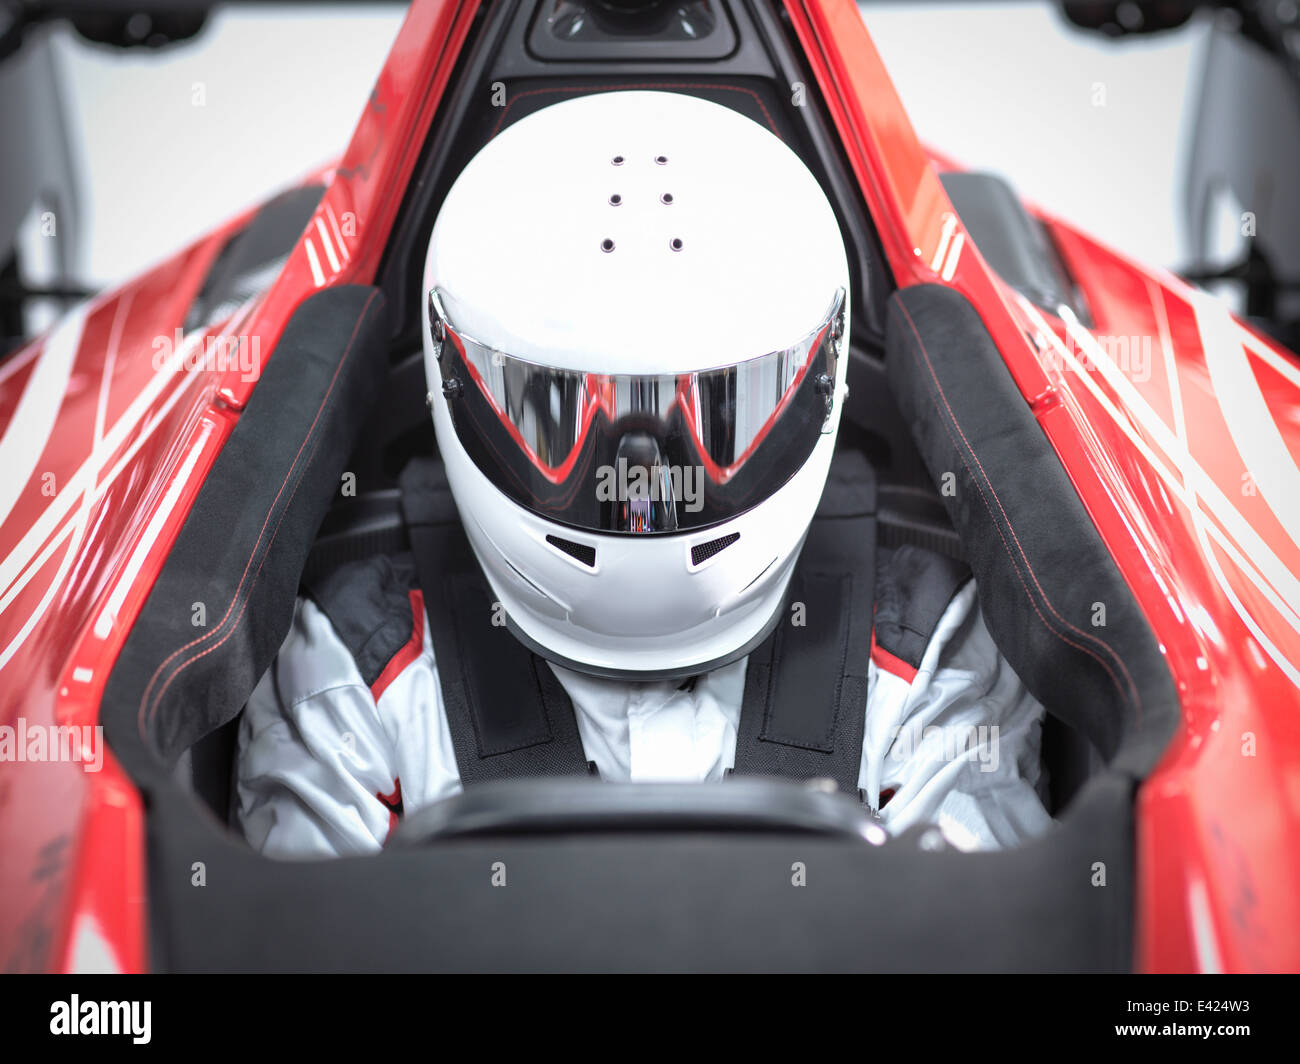 Racing driver wearing crash helmet in supercar - Stock Image